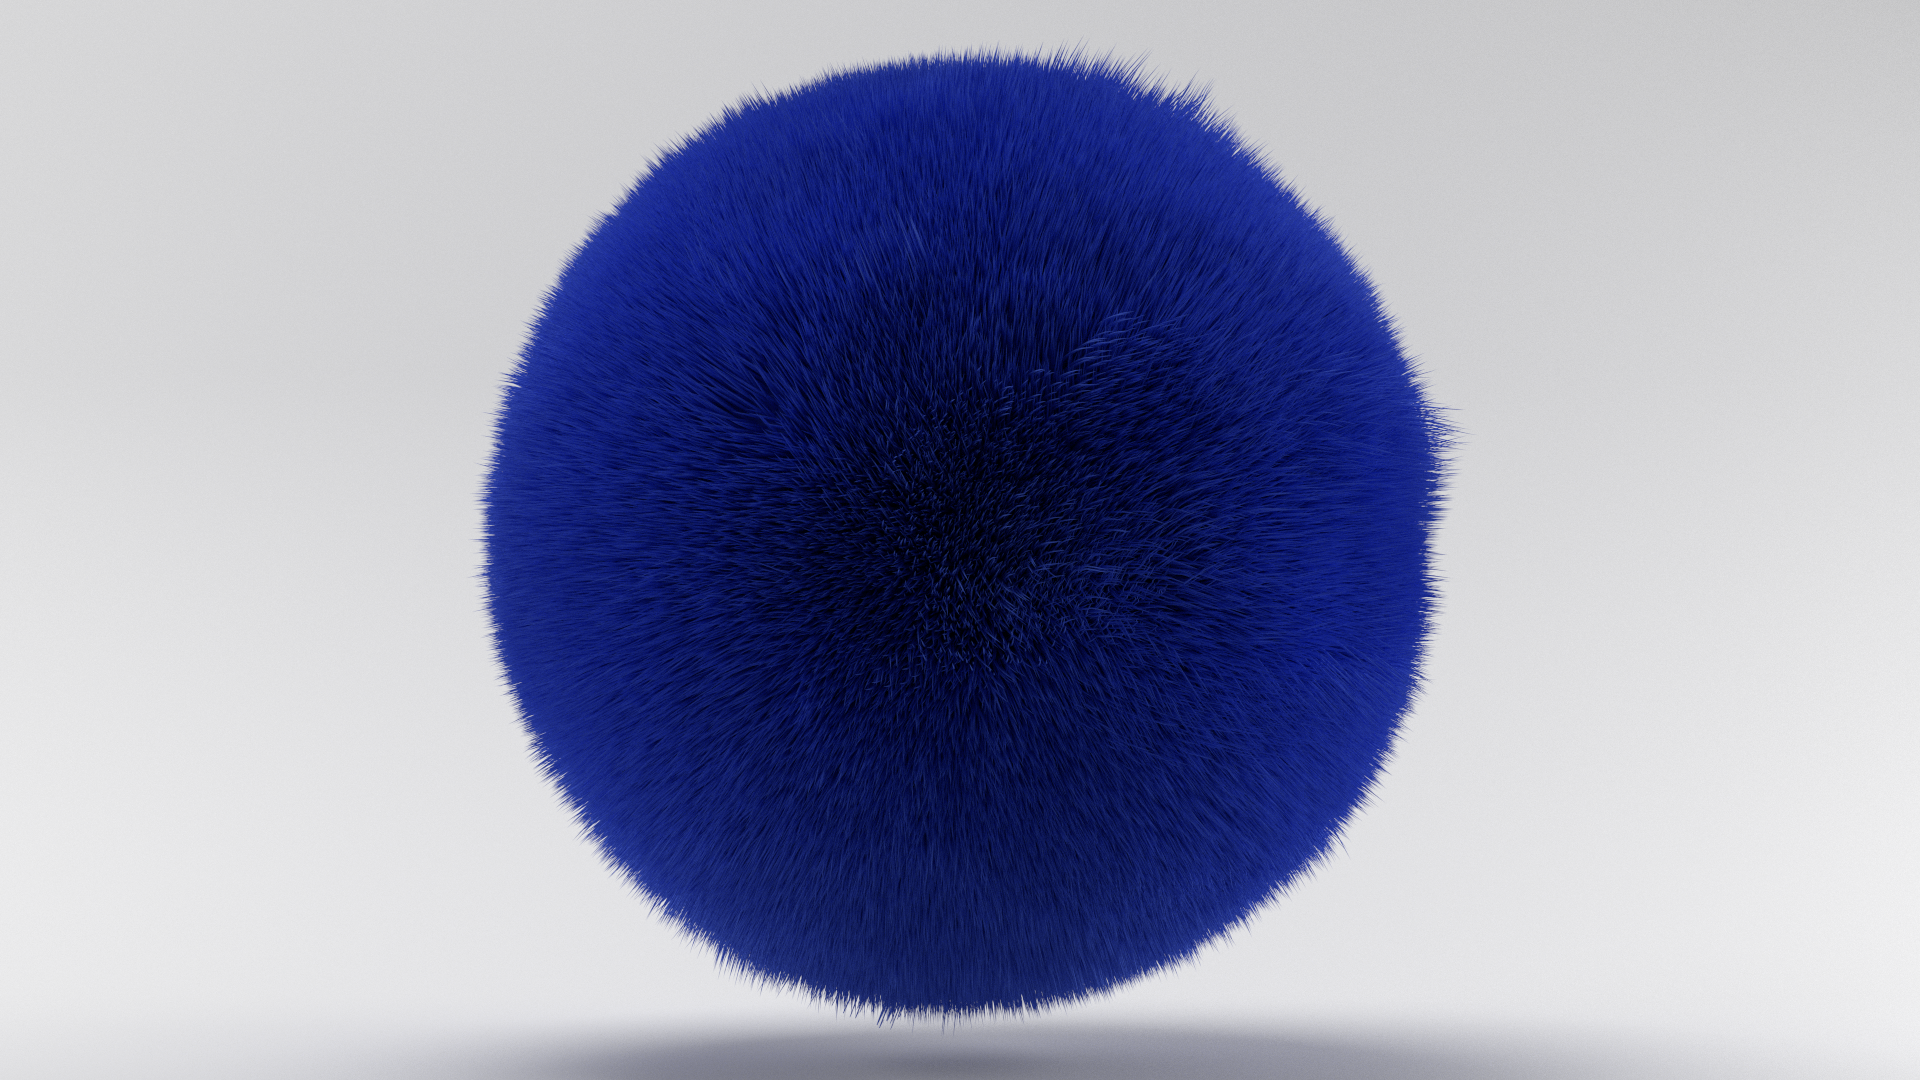 Furry Blue Ball